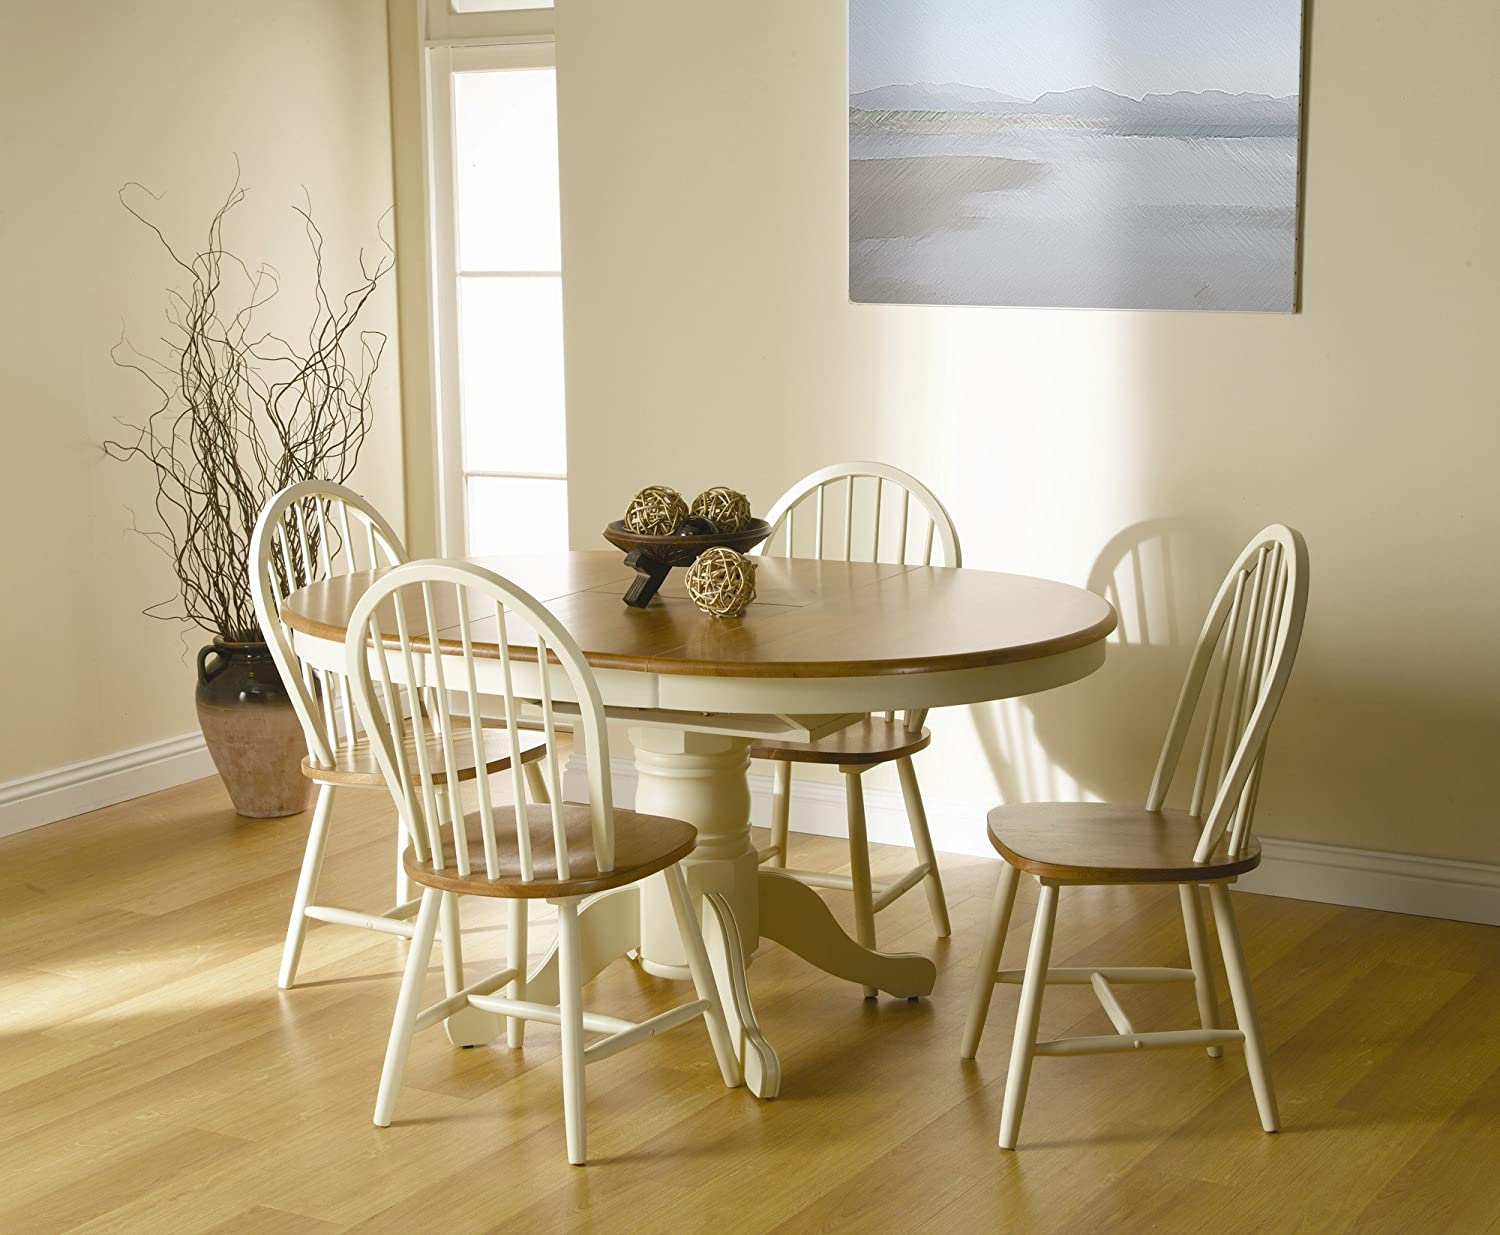 Cotswold Dining Table: Amazon.co.uk: Kitchen & Home